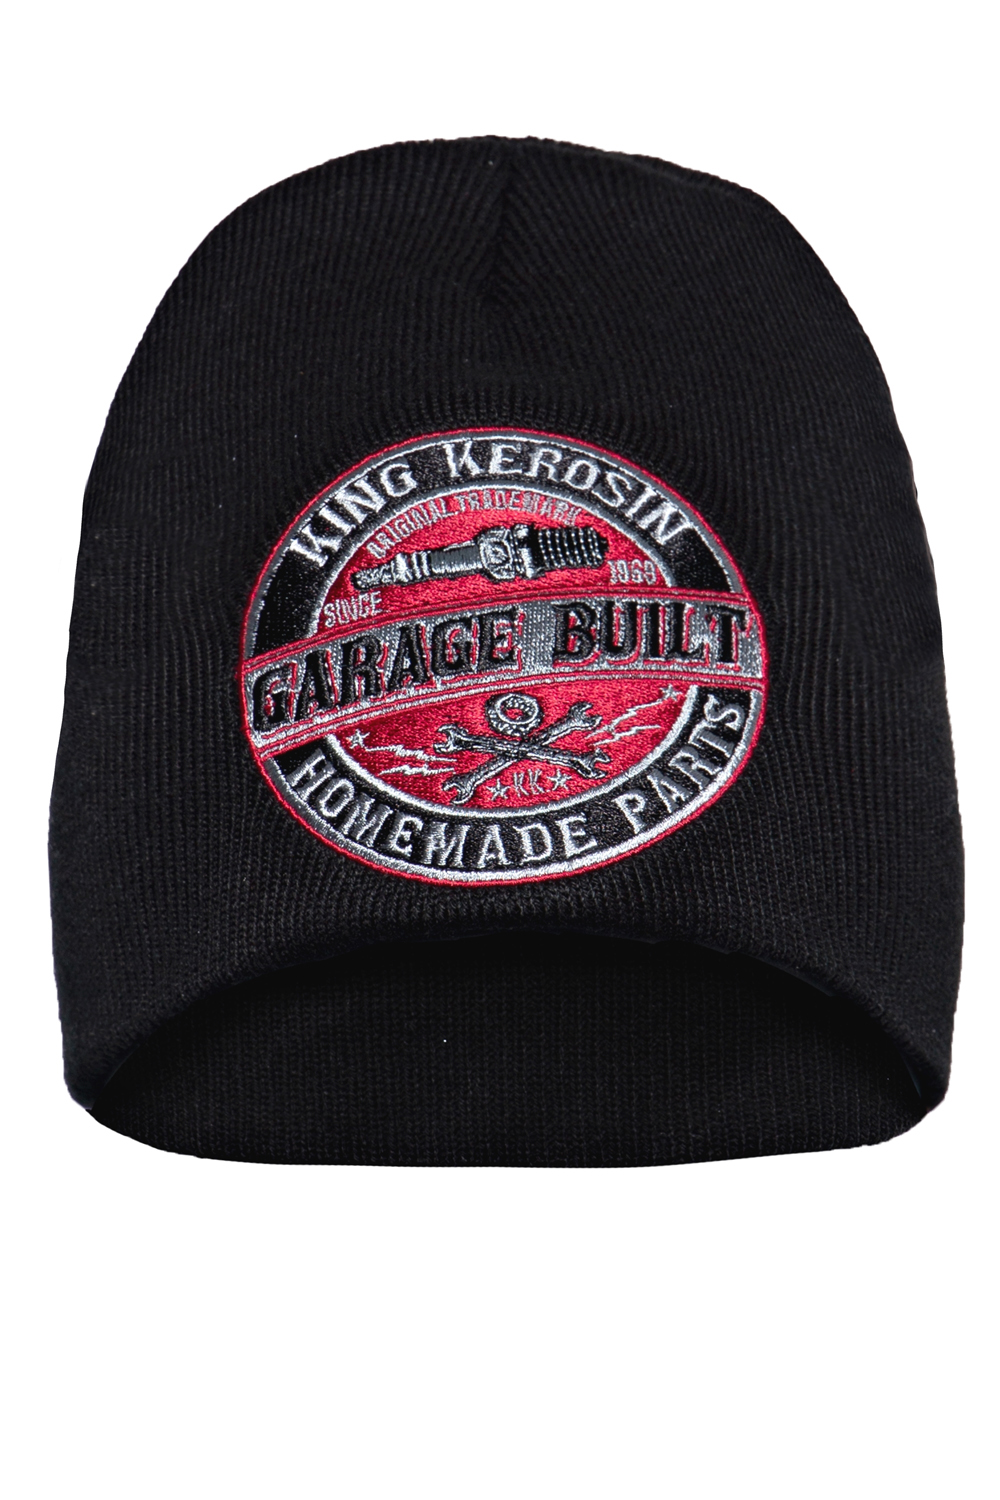 King Kerosin Mütze Strickmütze Stickerei Garage Built Rockabilly Biker Beanie